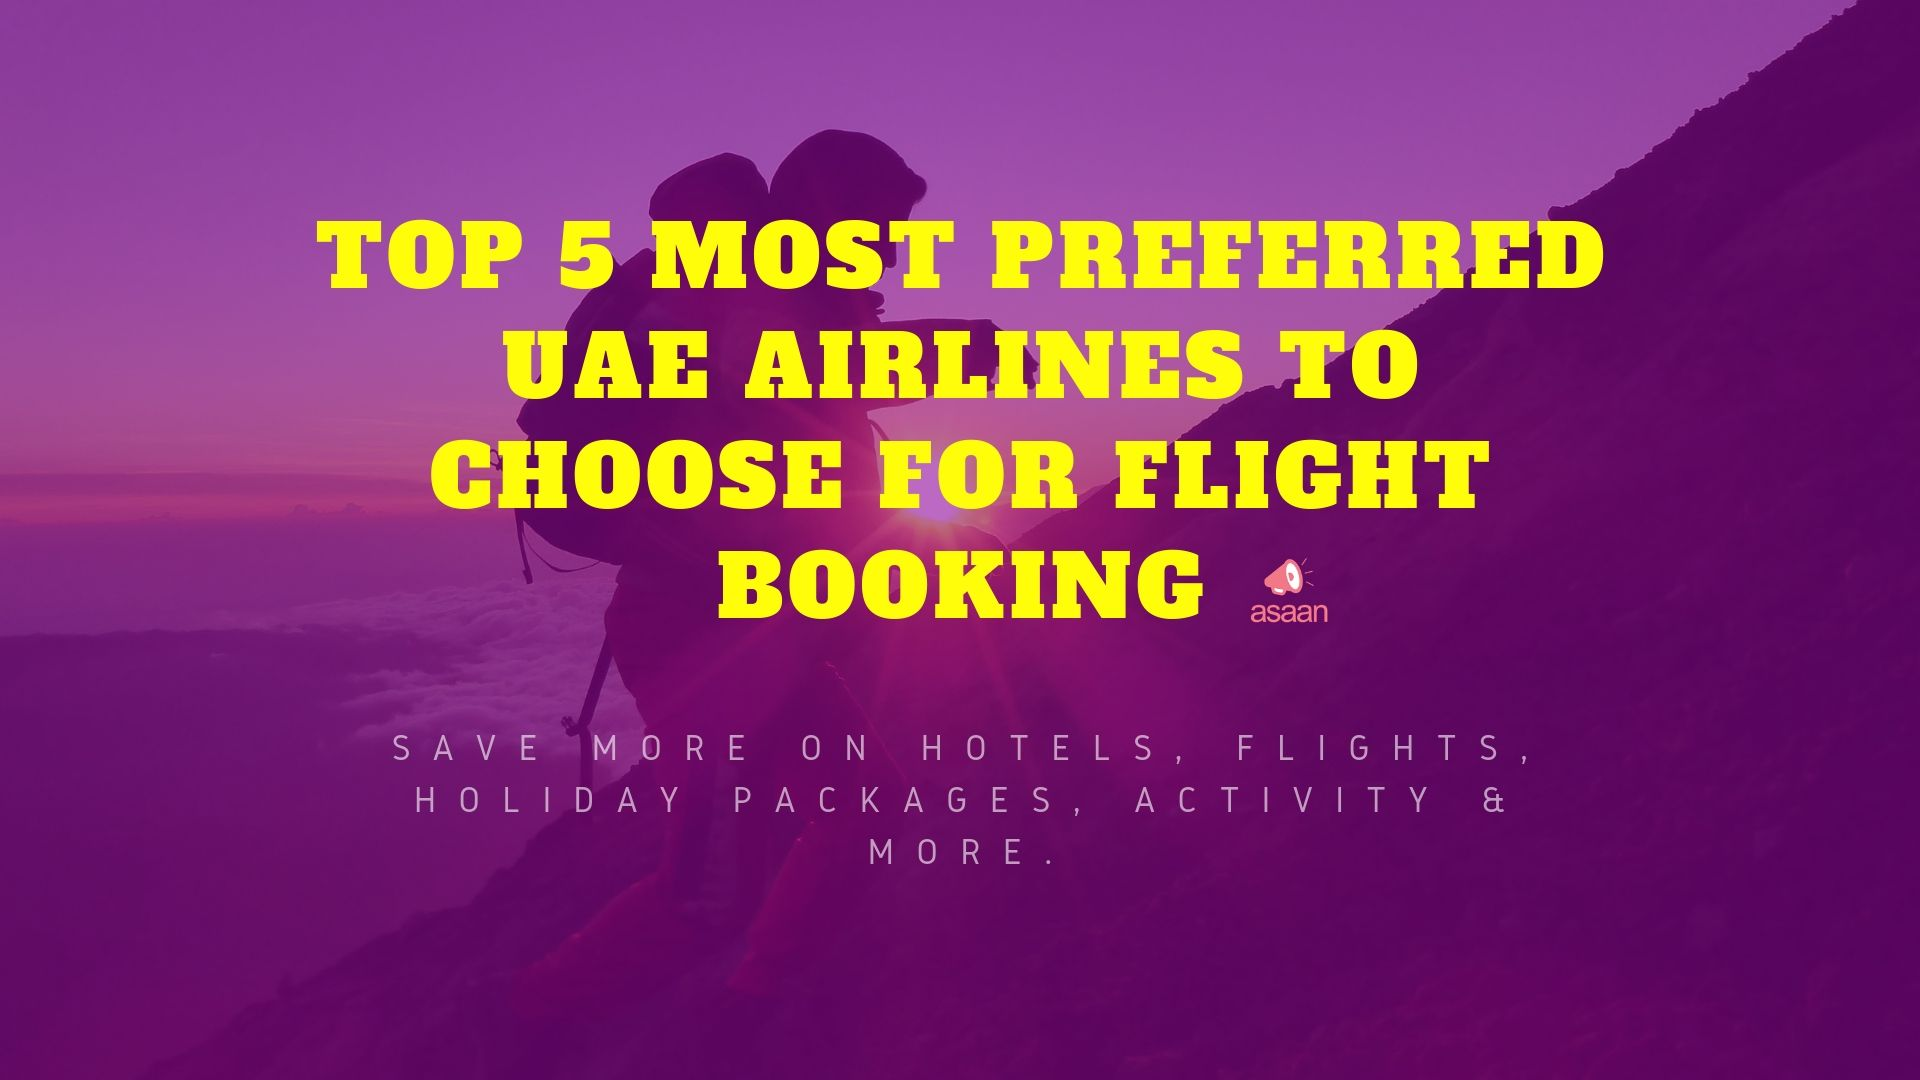 TOP 5 MOST PREFERRED UAE AIRLINES TO CHOOSE FOR FLIGHT BOOKING